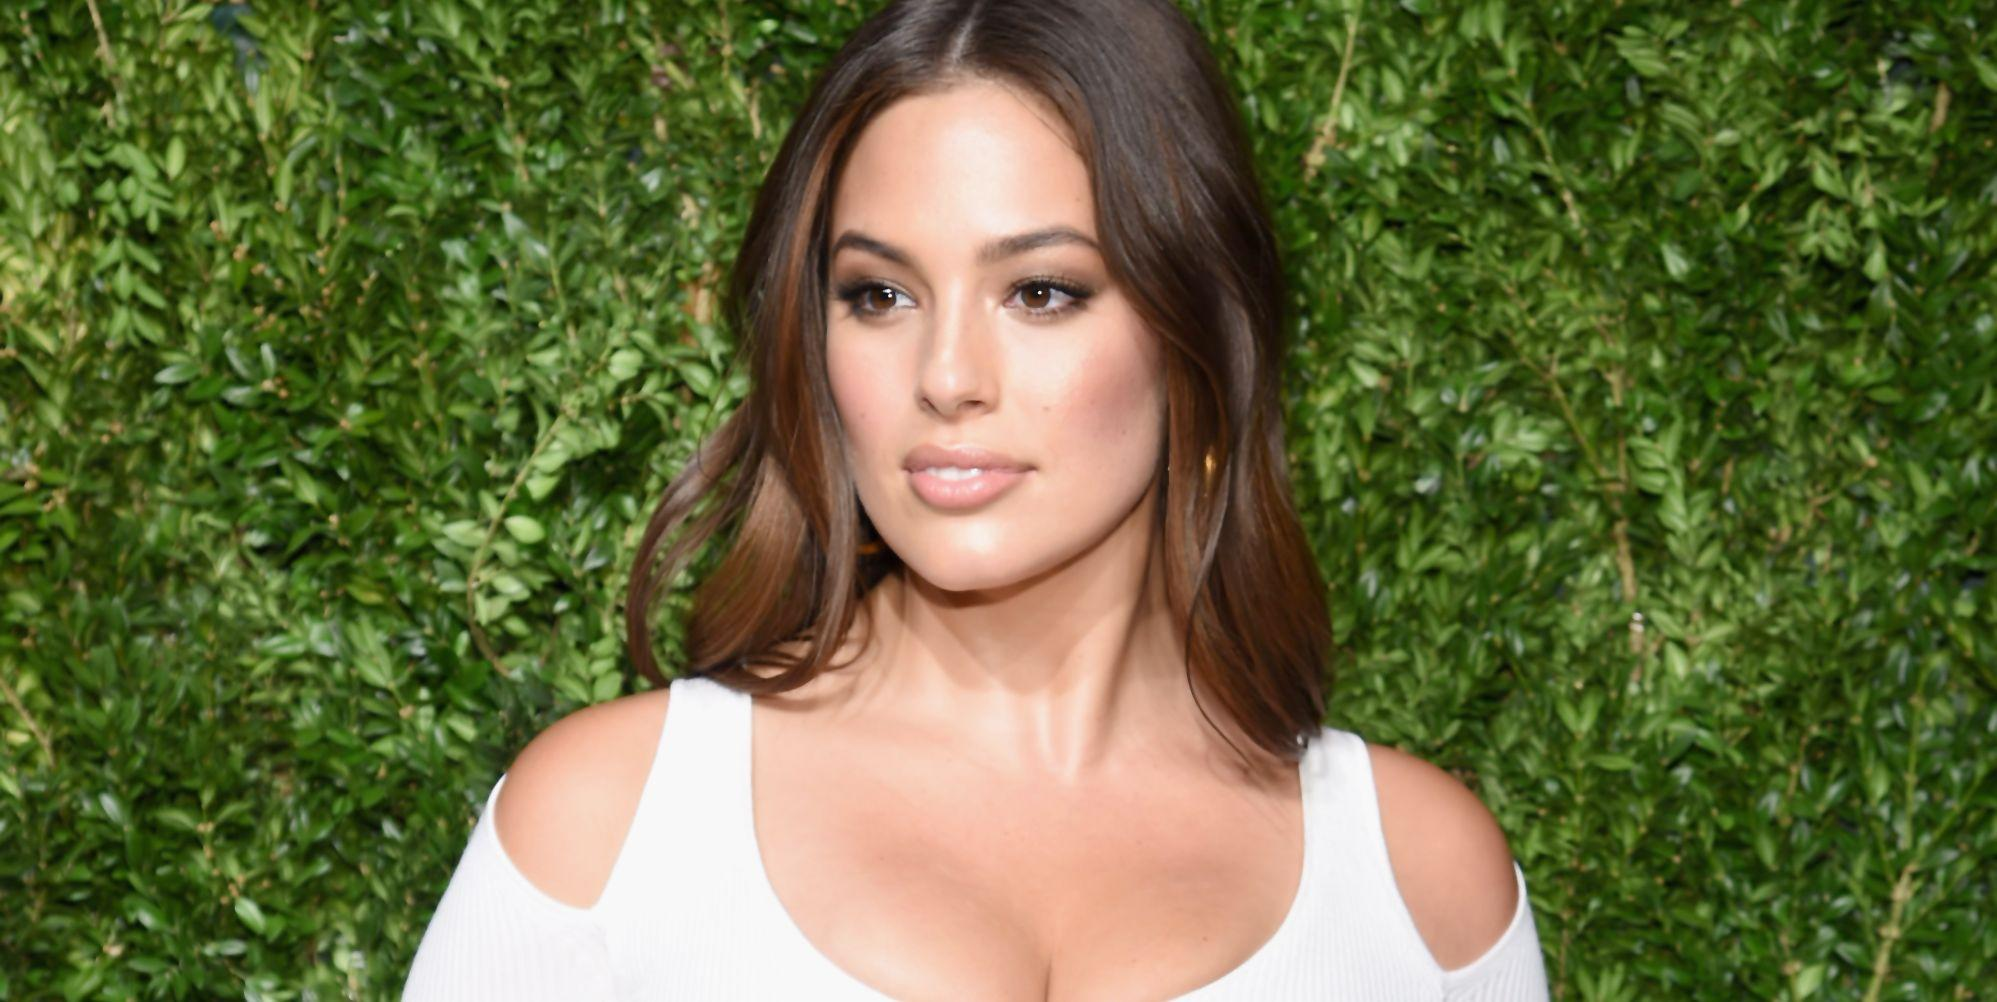 Ashley Graham praised for showing armpit hair in naked photo